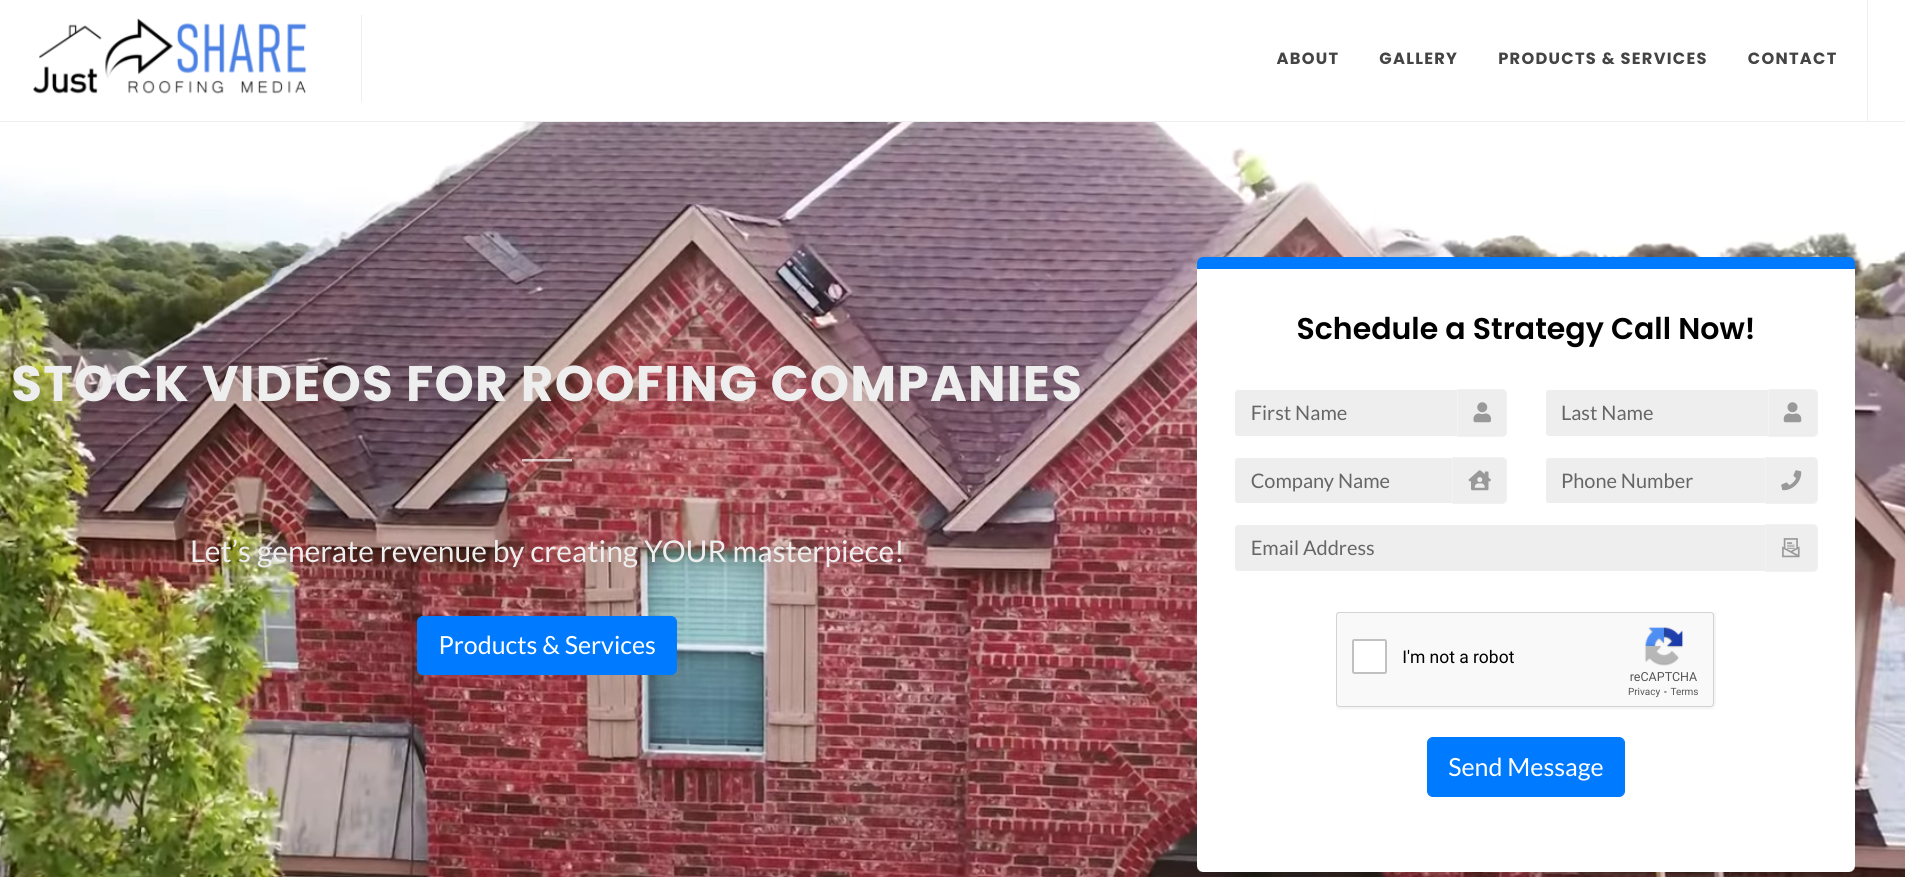 Just Share Roofing Media